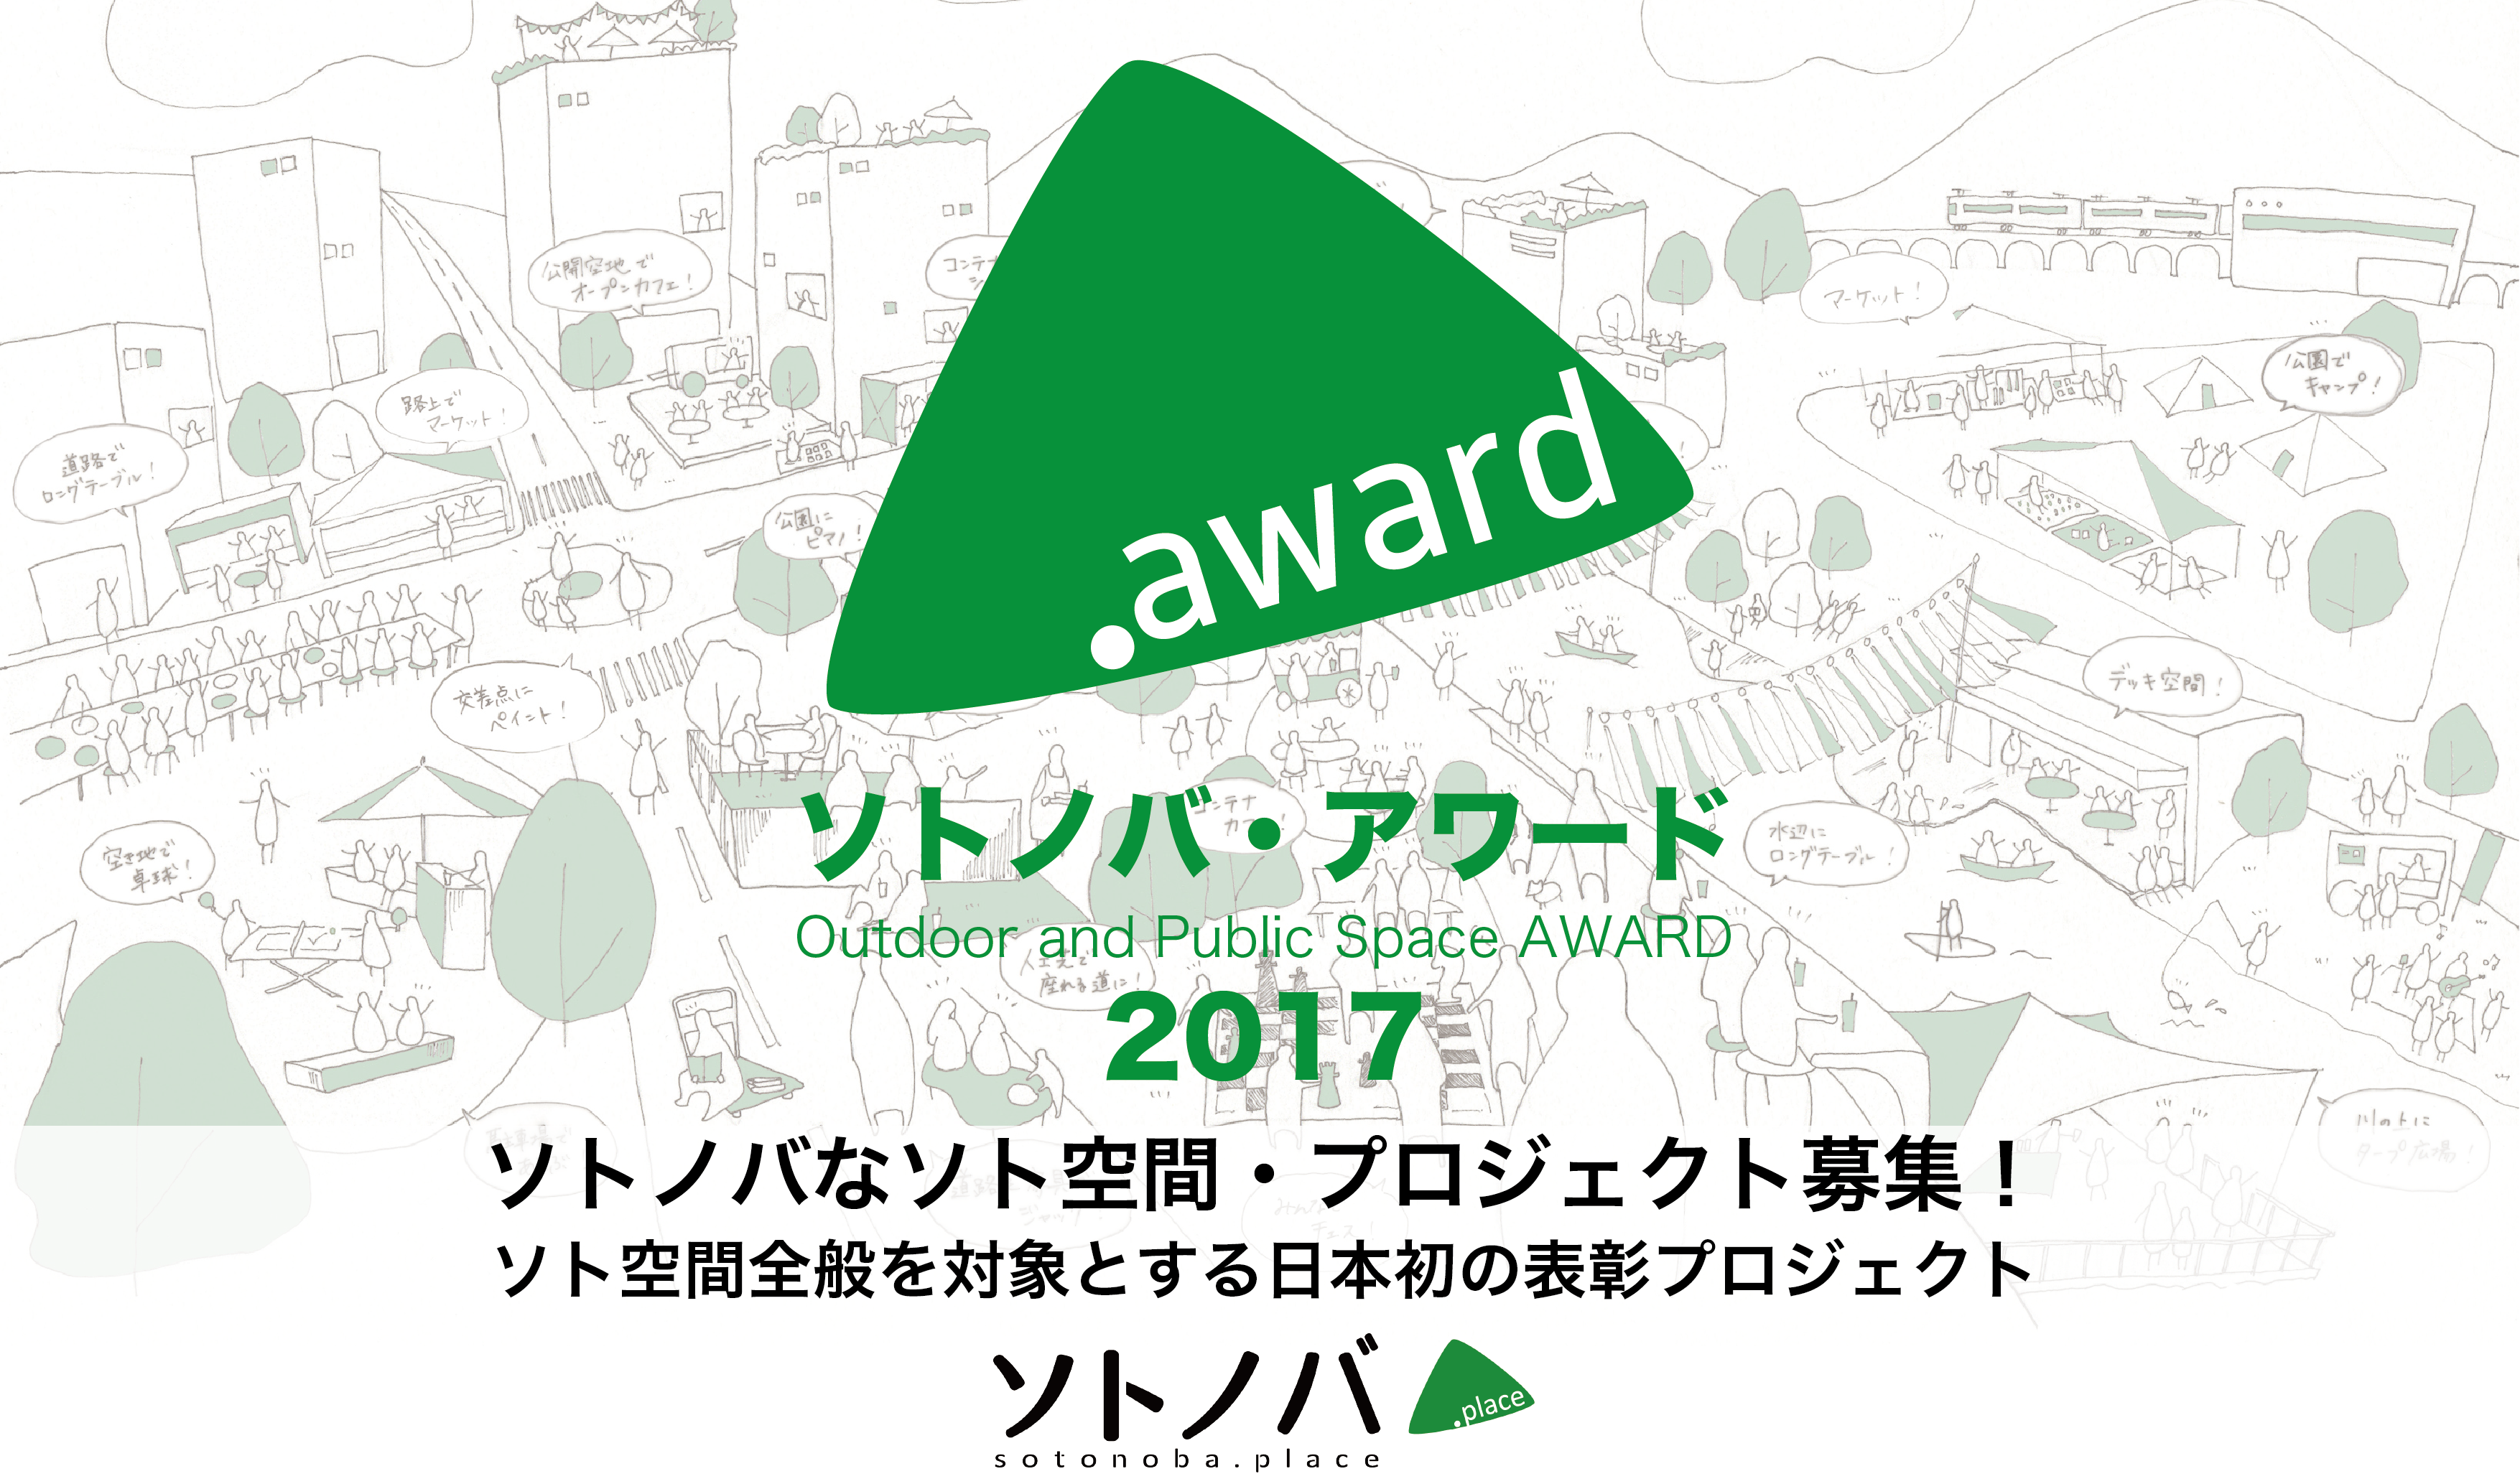 http://sotonoba.place/wp-content/uploads/2017/07/sotonobaawardcover.png